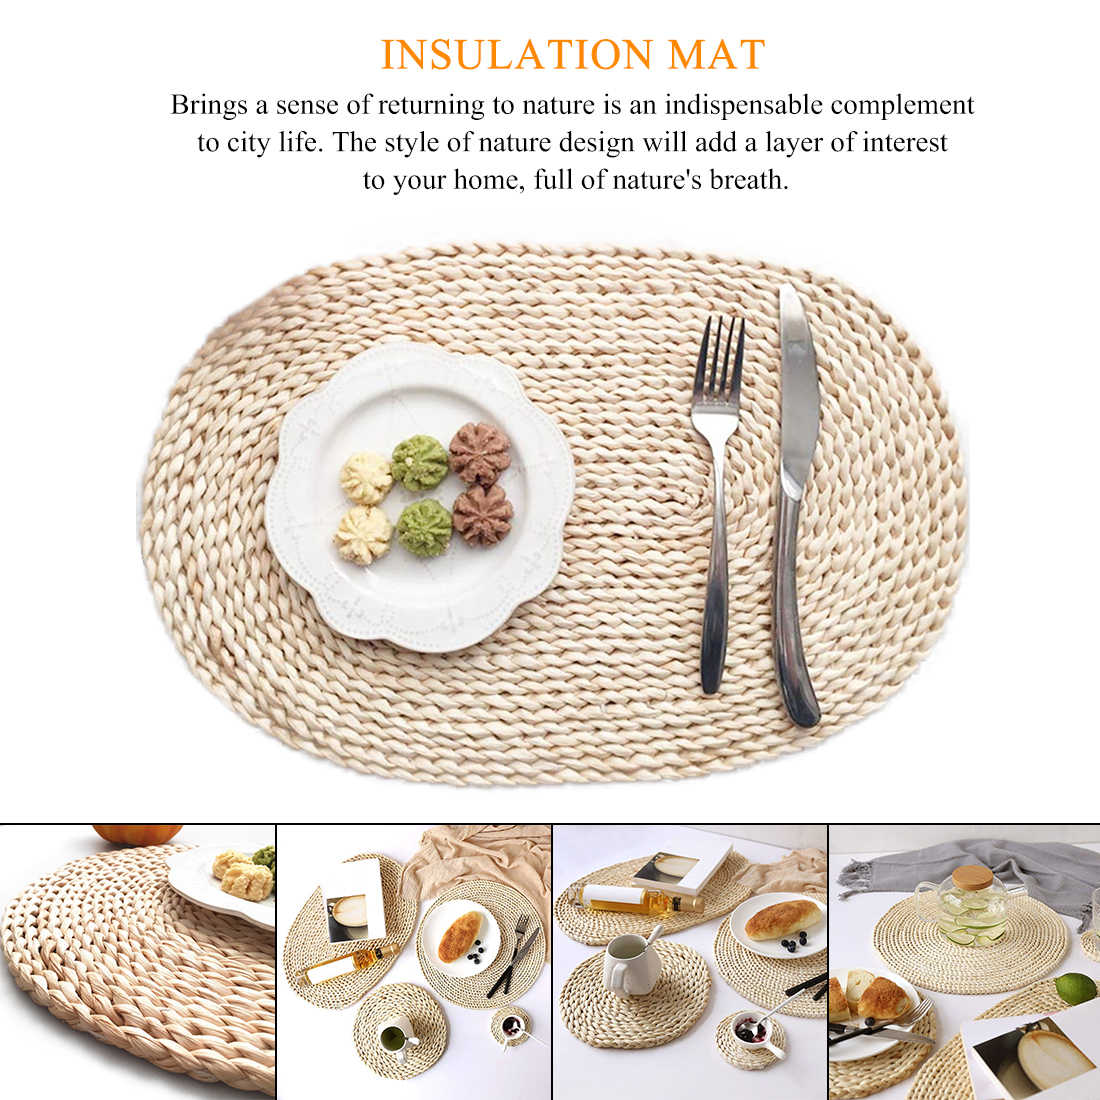 Rattan Placemats Straw Cup Coasters Dining Table Mat Heat Insulation Pot Holder Wicker Drink Coaster Kitchen Accessories